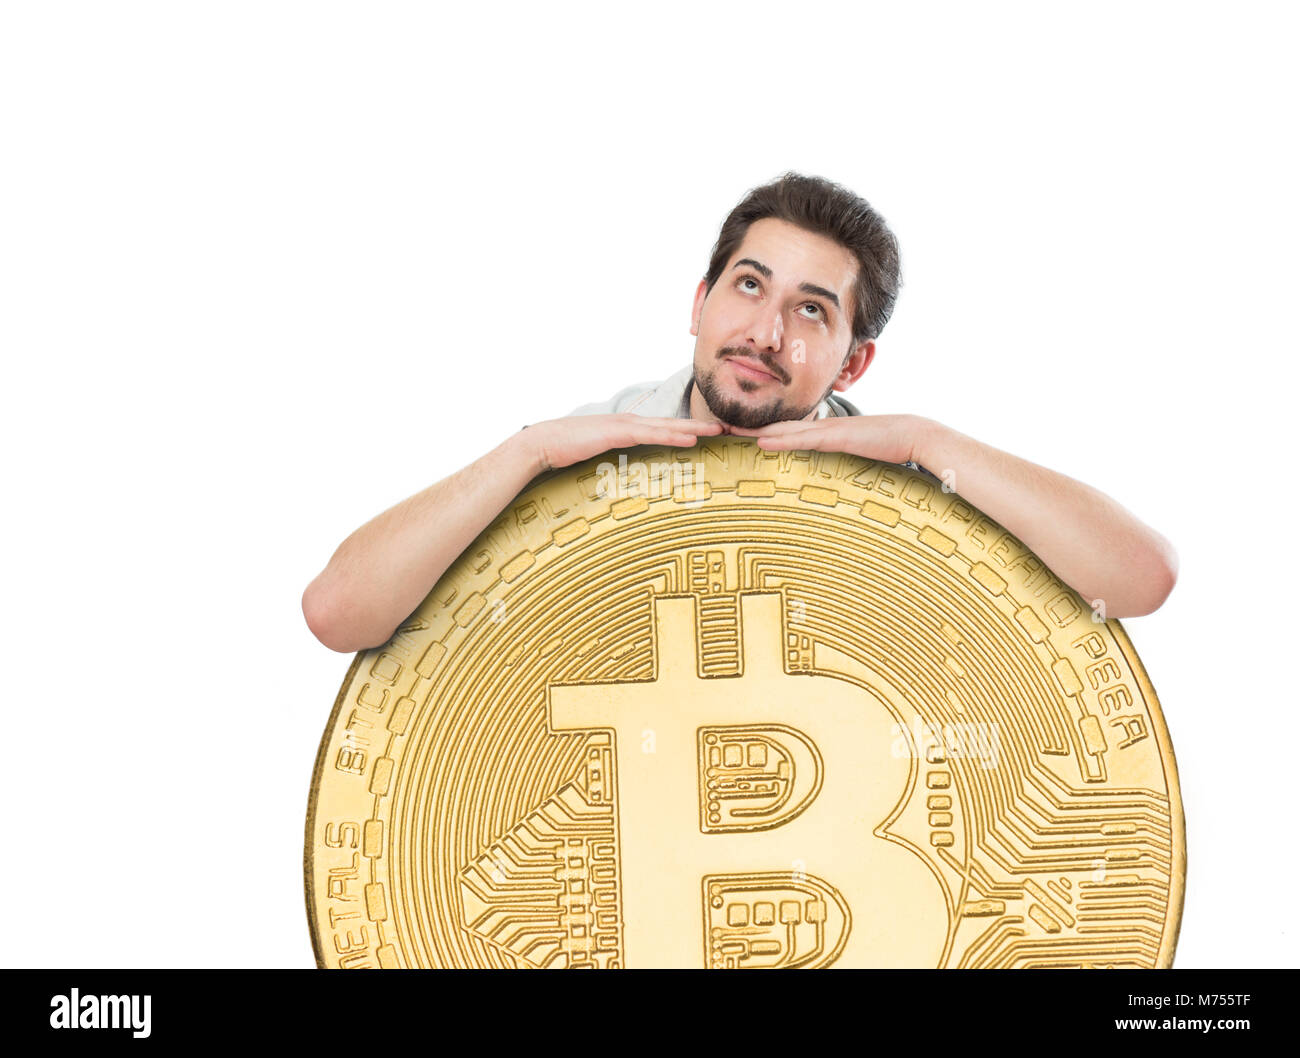 A cheerful man with a big joyful smile holding a huge bitcoin coin on a white background - Stock Image